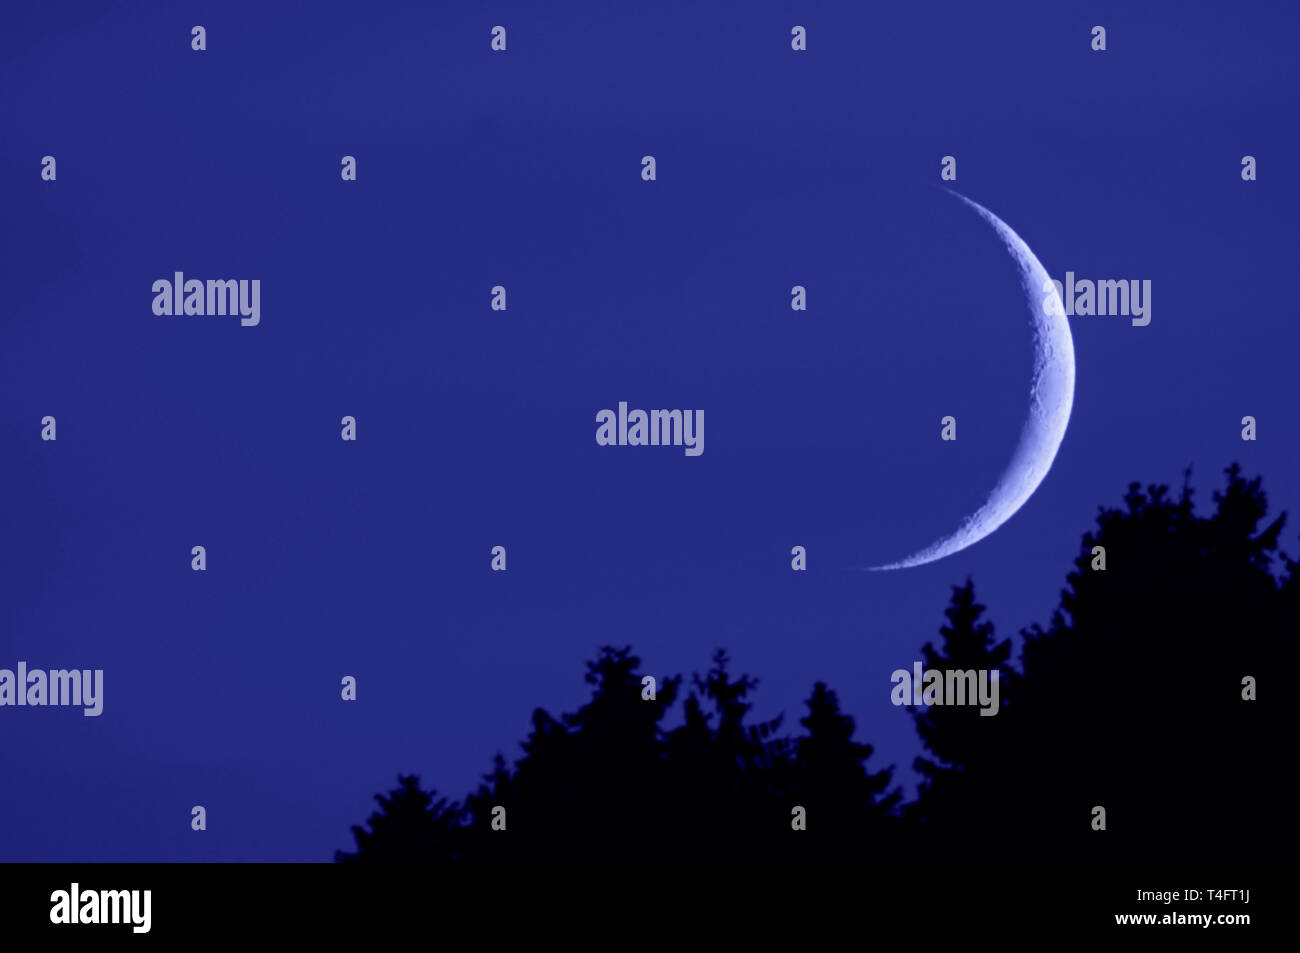 Crescent moon, sickle moon, fingernail moon rising up over coniferous woods at a blue night sky, just after moonrise, Europe - Stock Image